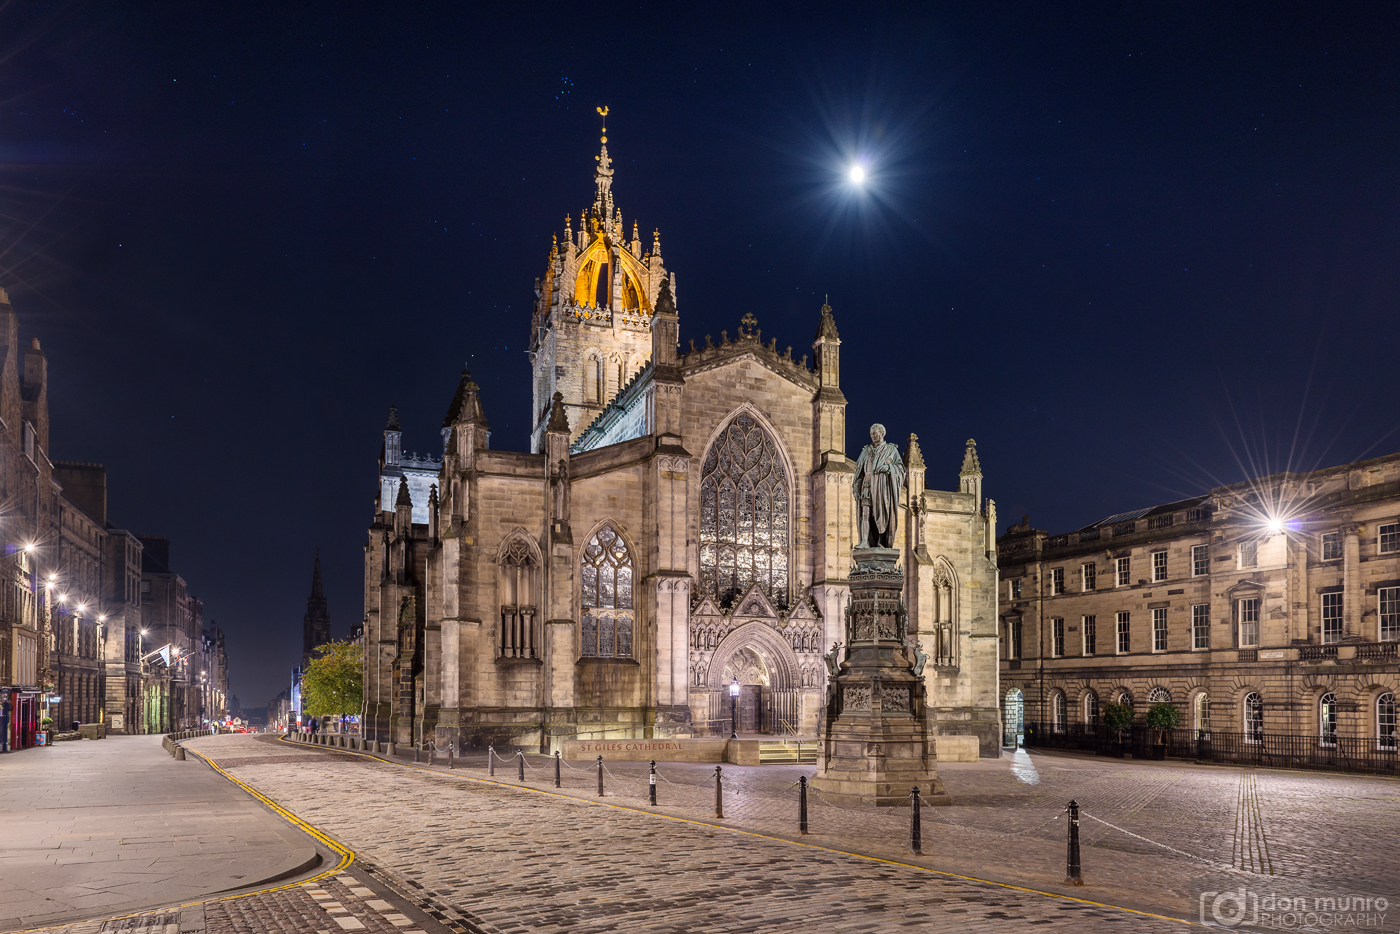 Night Photography Workshops Edinburgh